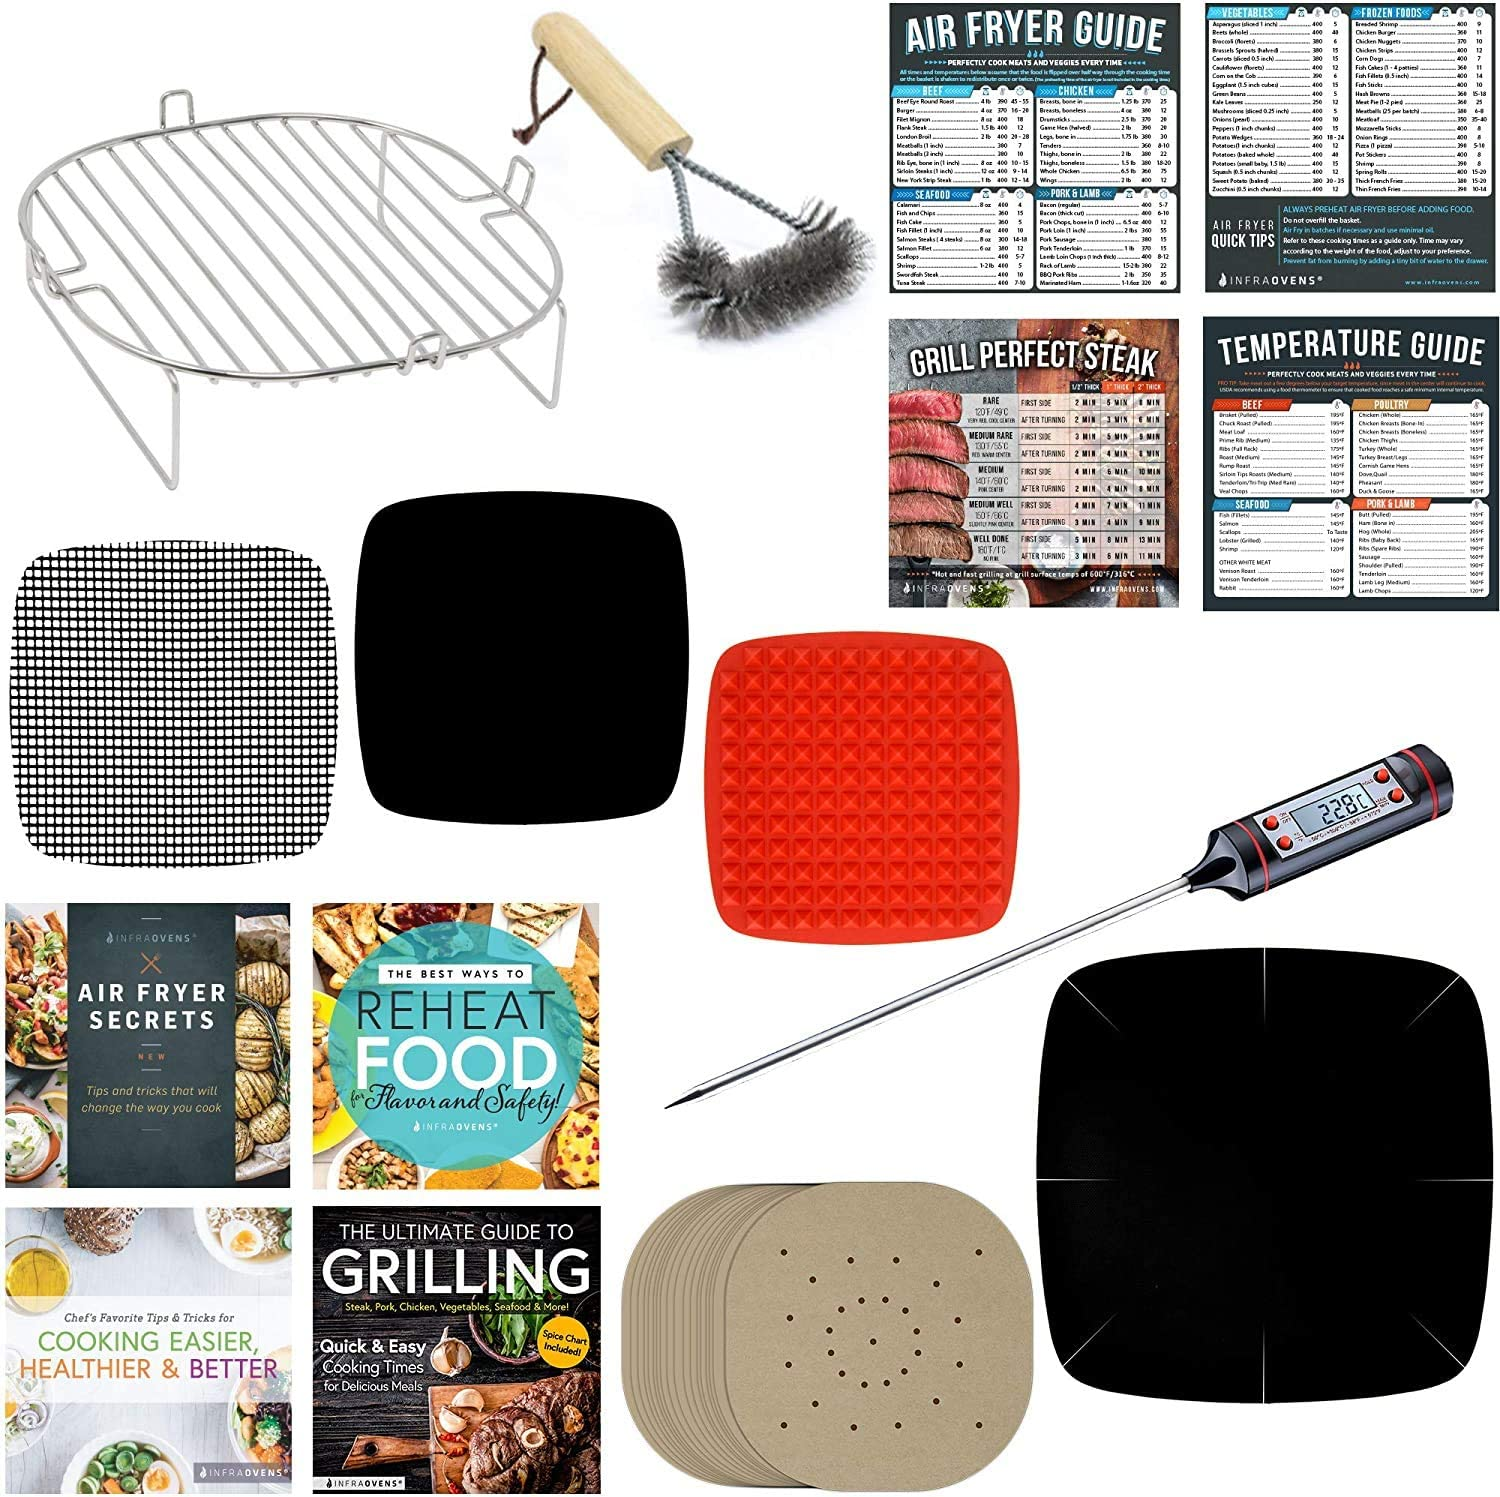 Air Fryer Countertop Oven Accessories Compatible With Ninja Foodi, Cuisinart TOA, Instant Pot Vortex, Soing, Pinsoon, Geek Chef, Master Culinary +More | Stainless Steel Rack Accessory + Cookbooks